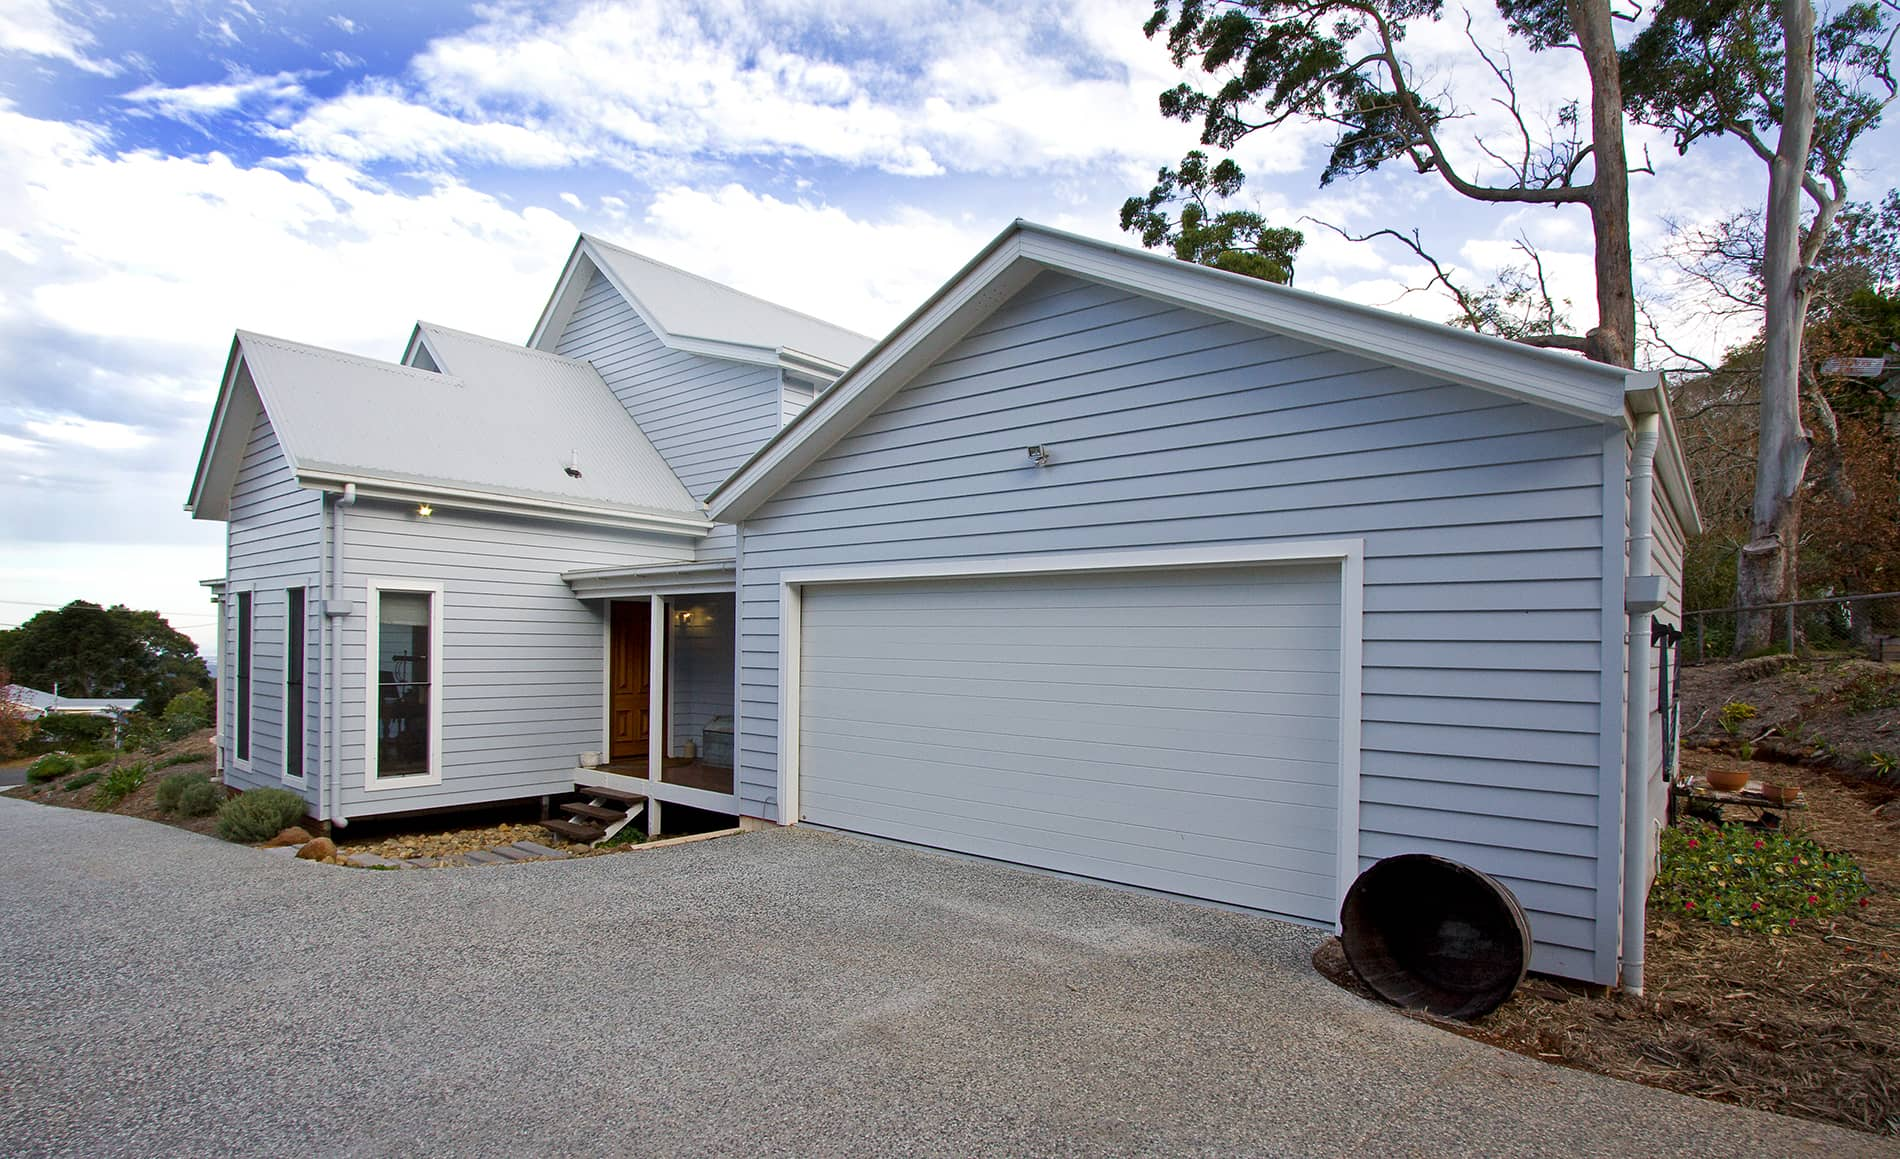 cape cod style home in mount tamborine traditional queenslanders